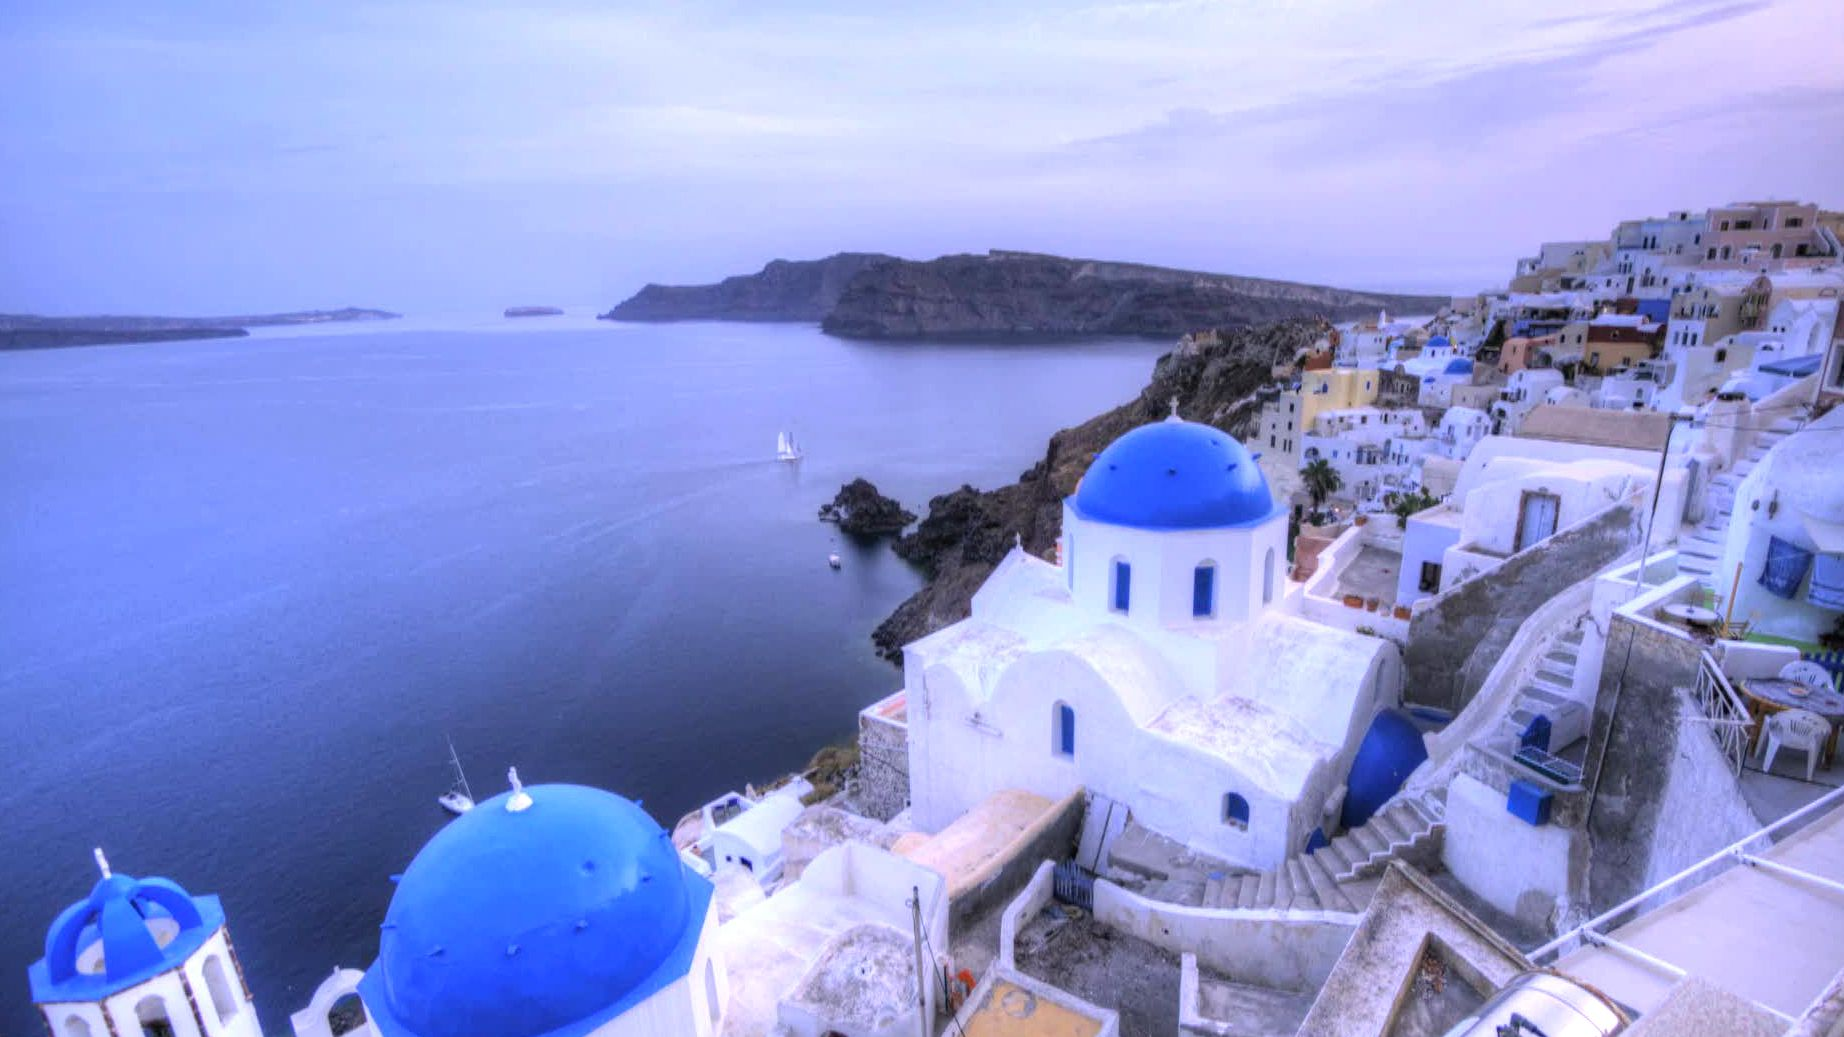 Greek Vacation Fantasy: Pick up your Jackie O sunglasses and head off to a Mediterranean wonderland.